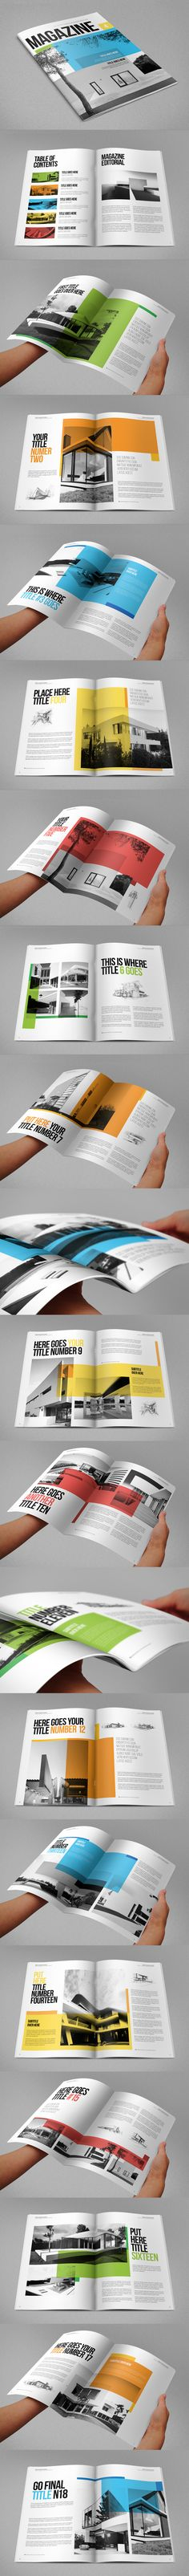 Modern Architecture Magazine. Download here: http://graphicriver.net/item/modern-architecture-magazine/8805408?ref=abradesign #design #magazine